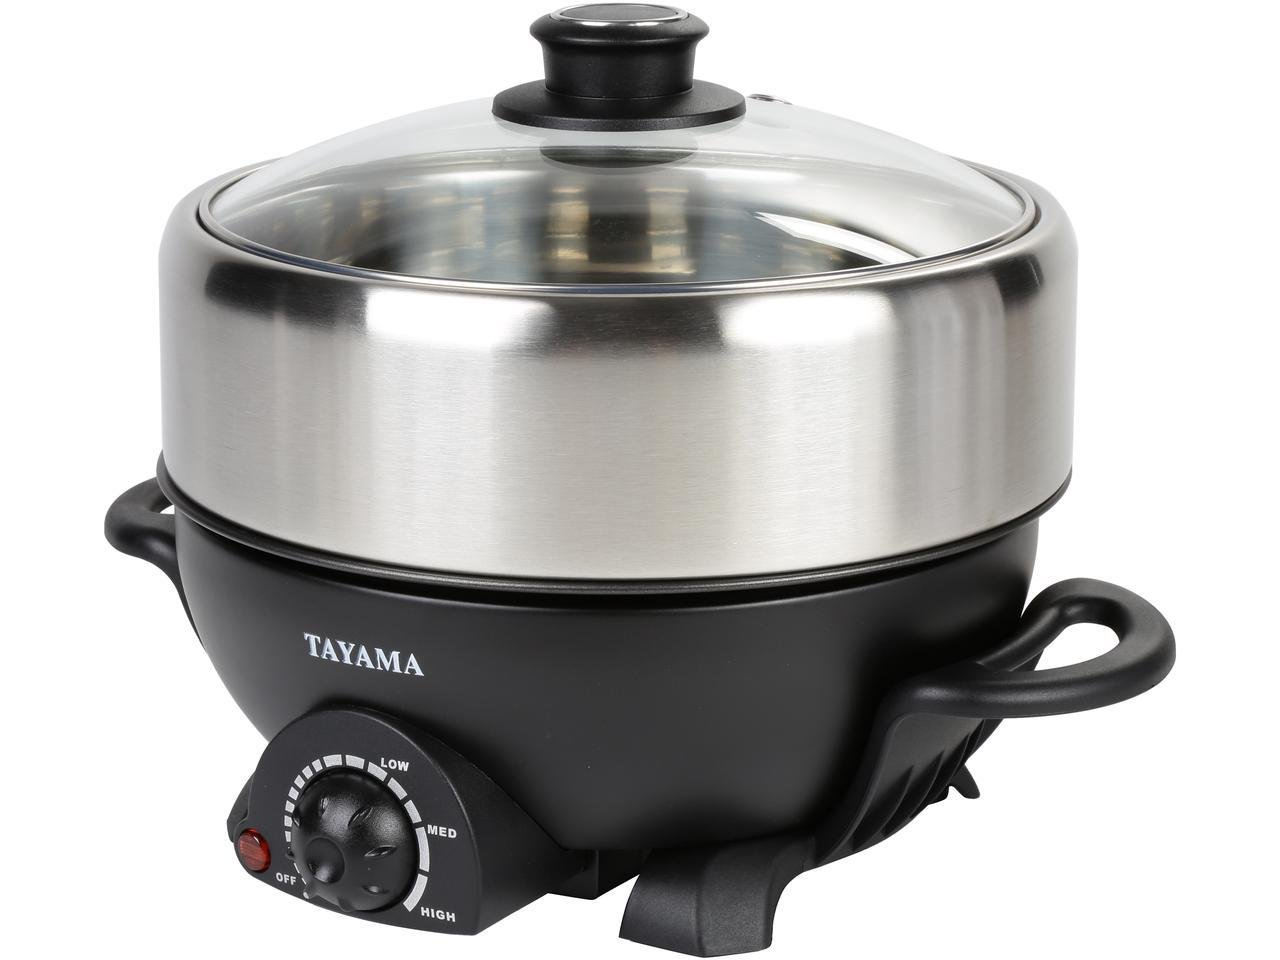 TRMC-40 Shabu and Grill Multi-Cooker, 4 quart, Black by TAYAMA (Image #1)